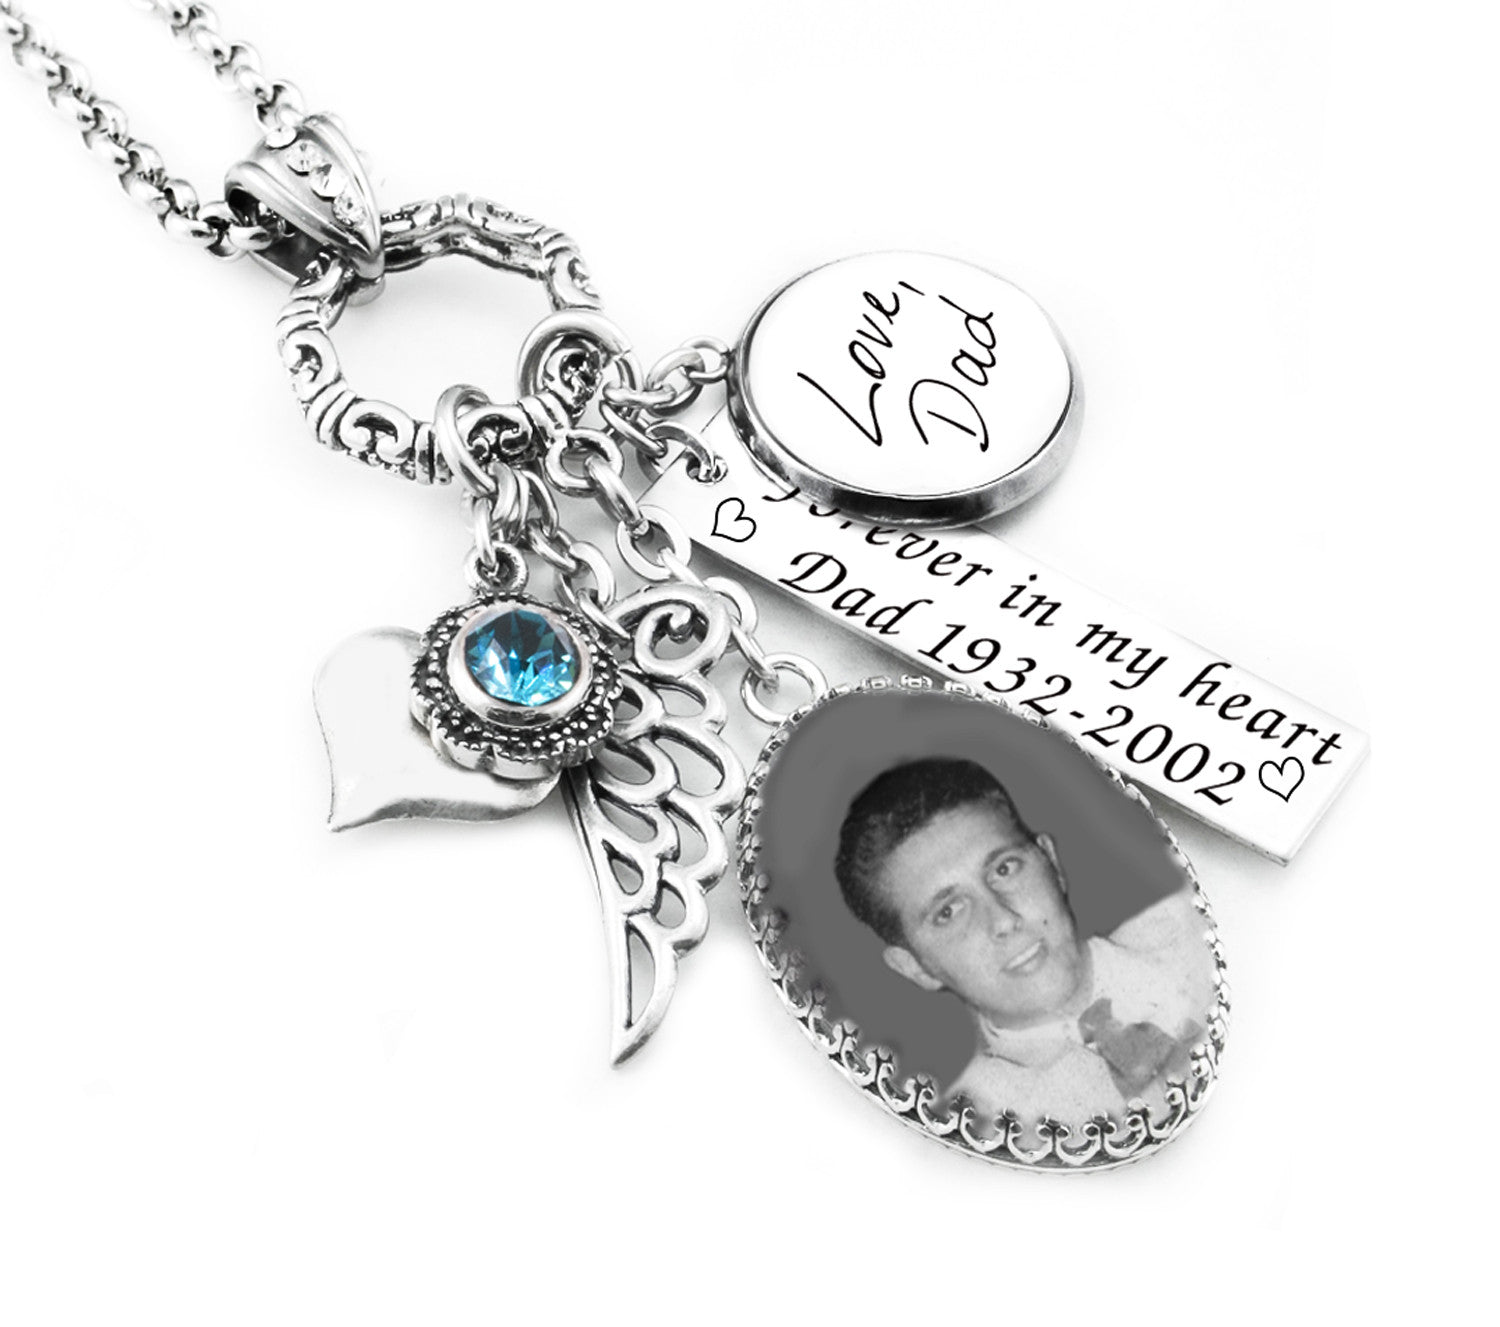 dad necklace silver jewelry love memorial jewelrysavenko pin sterling remembrance